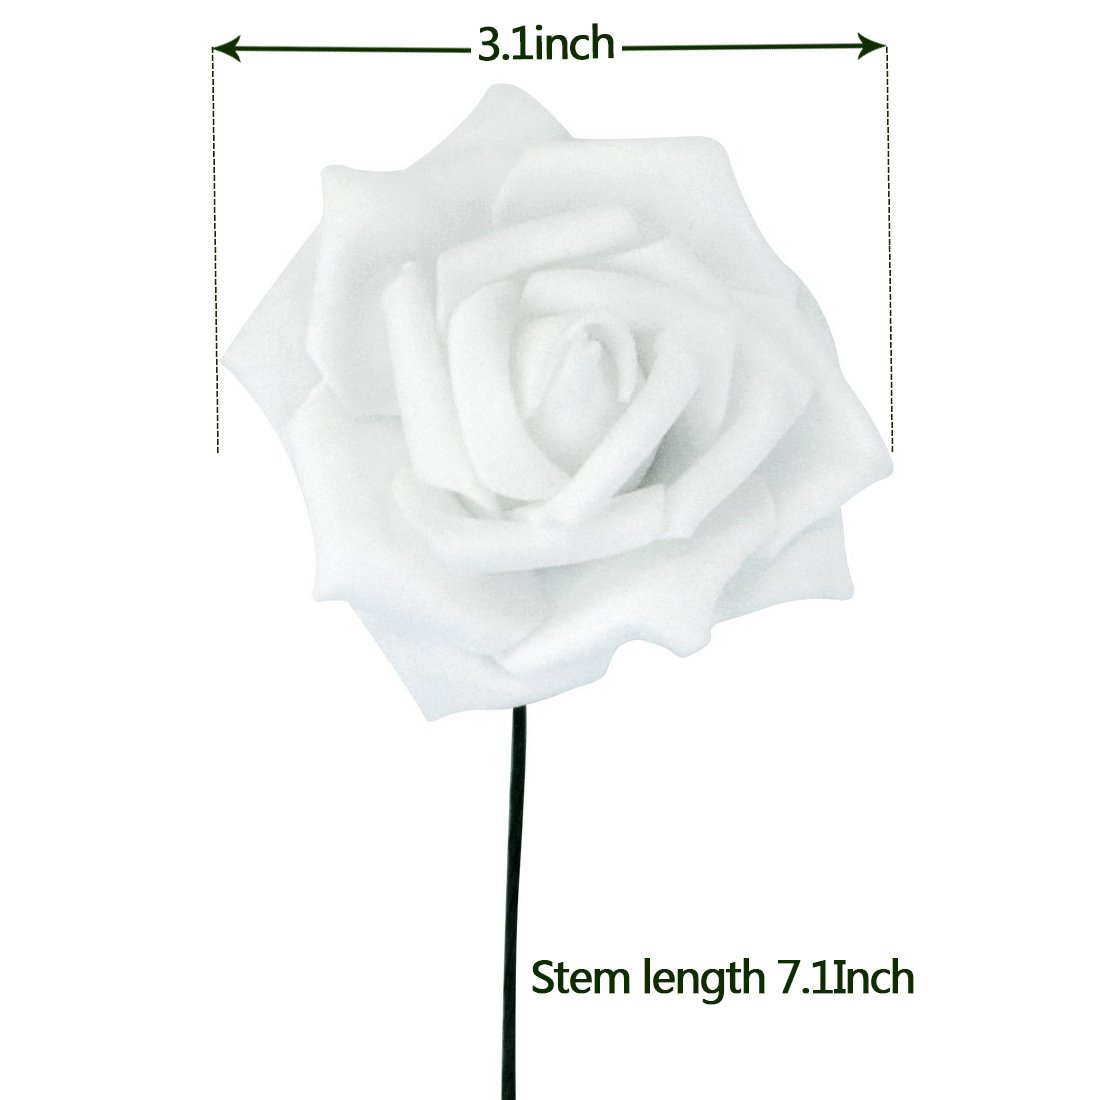 obmwang 50PCS White Foam Roses Flowers Real Touch Artificial Rose Flowers DIY 3D Wedding Bridal Bouquet Home Hotel Party Garden Floral Decor White